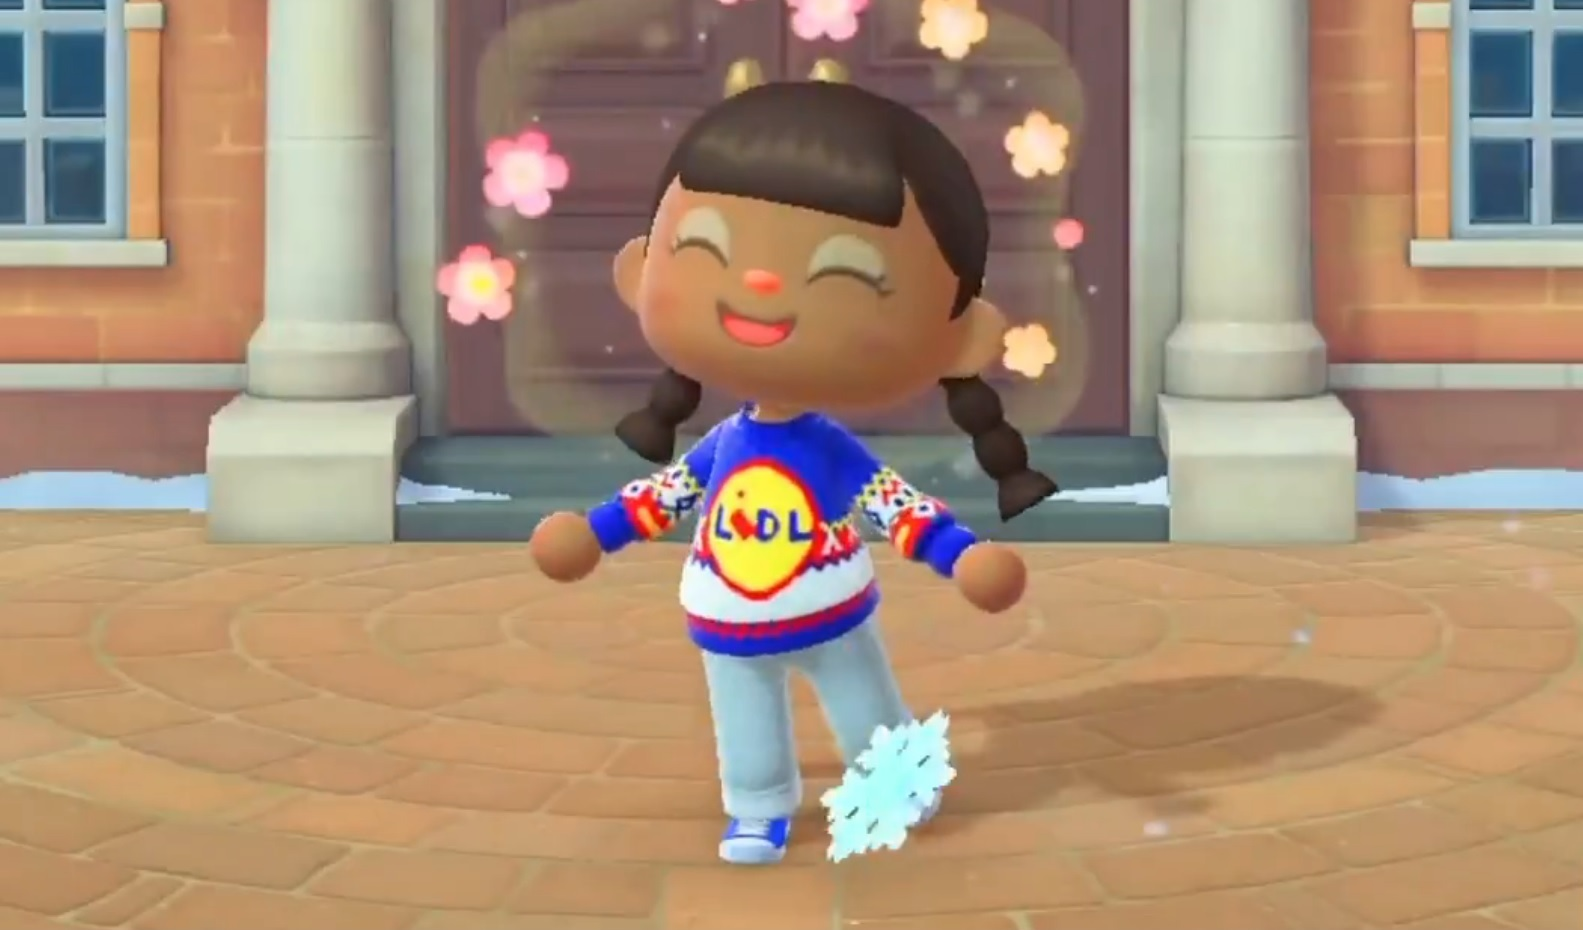 Maglione Lidl Animal Crossing: New Horizons